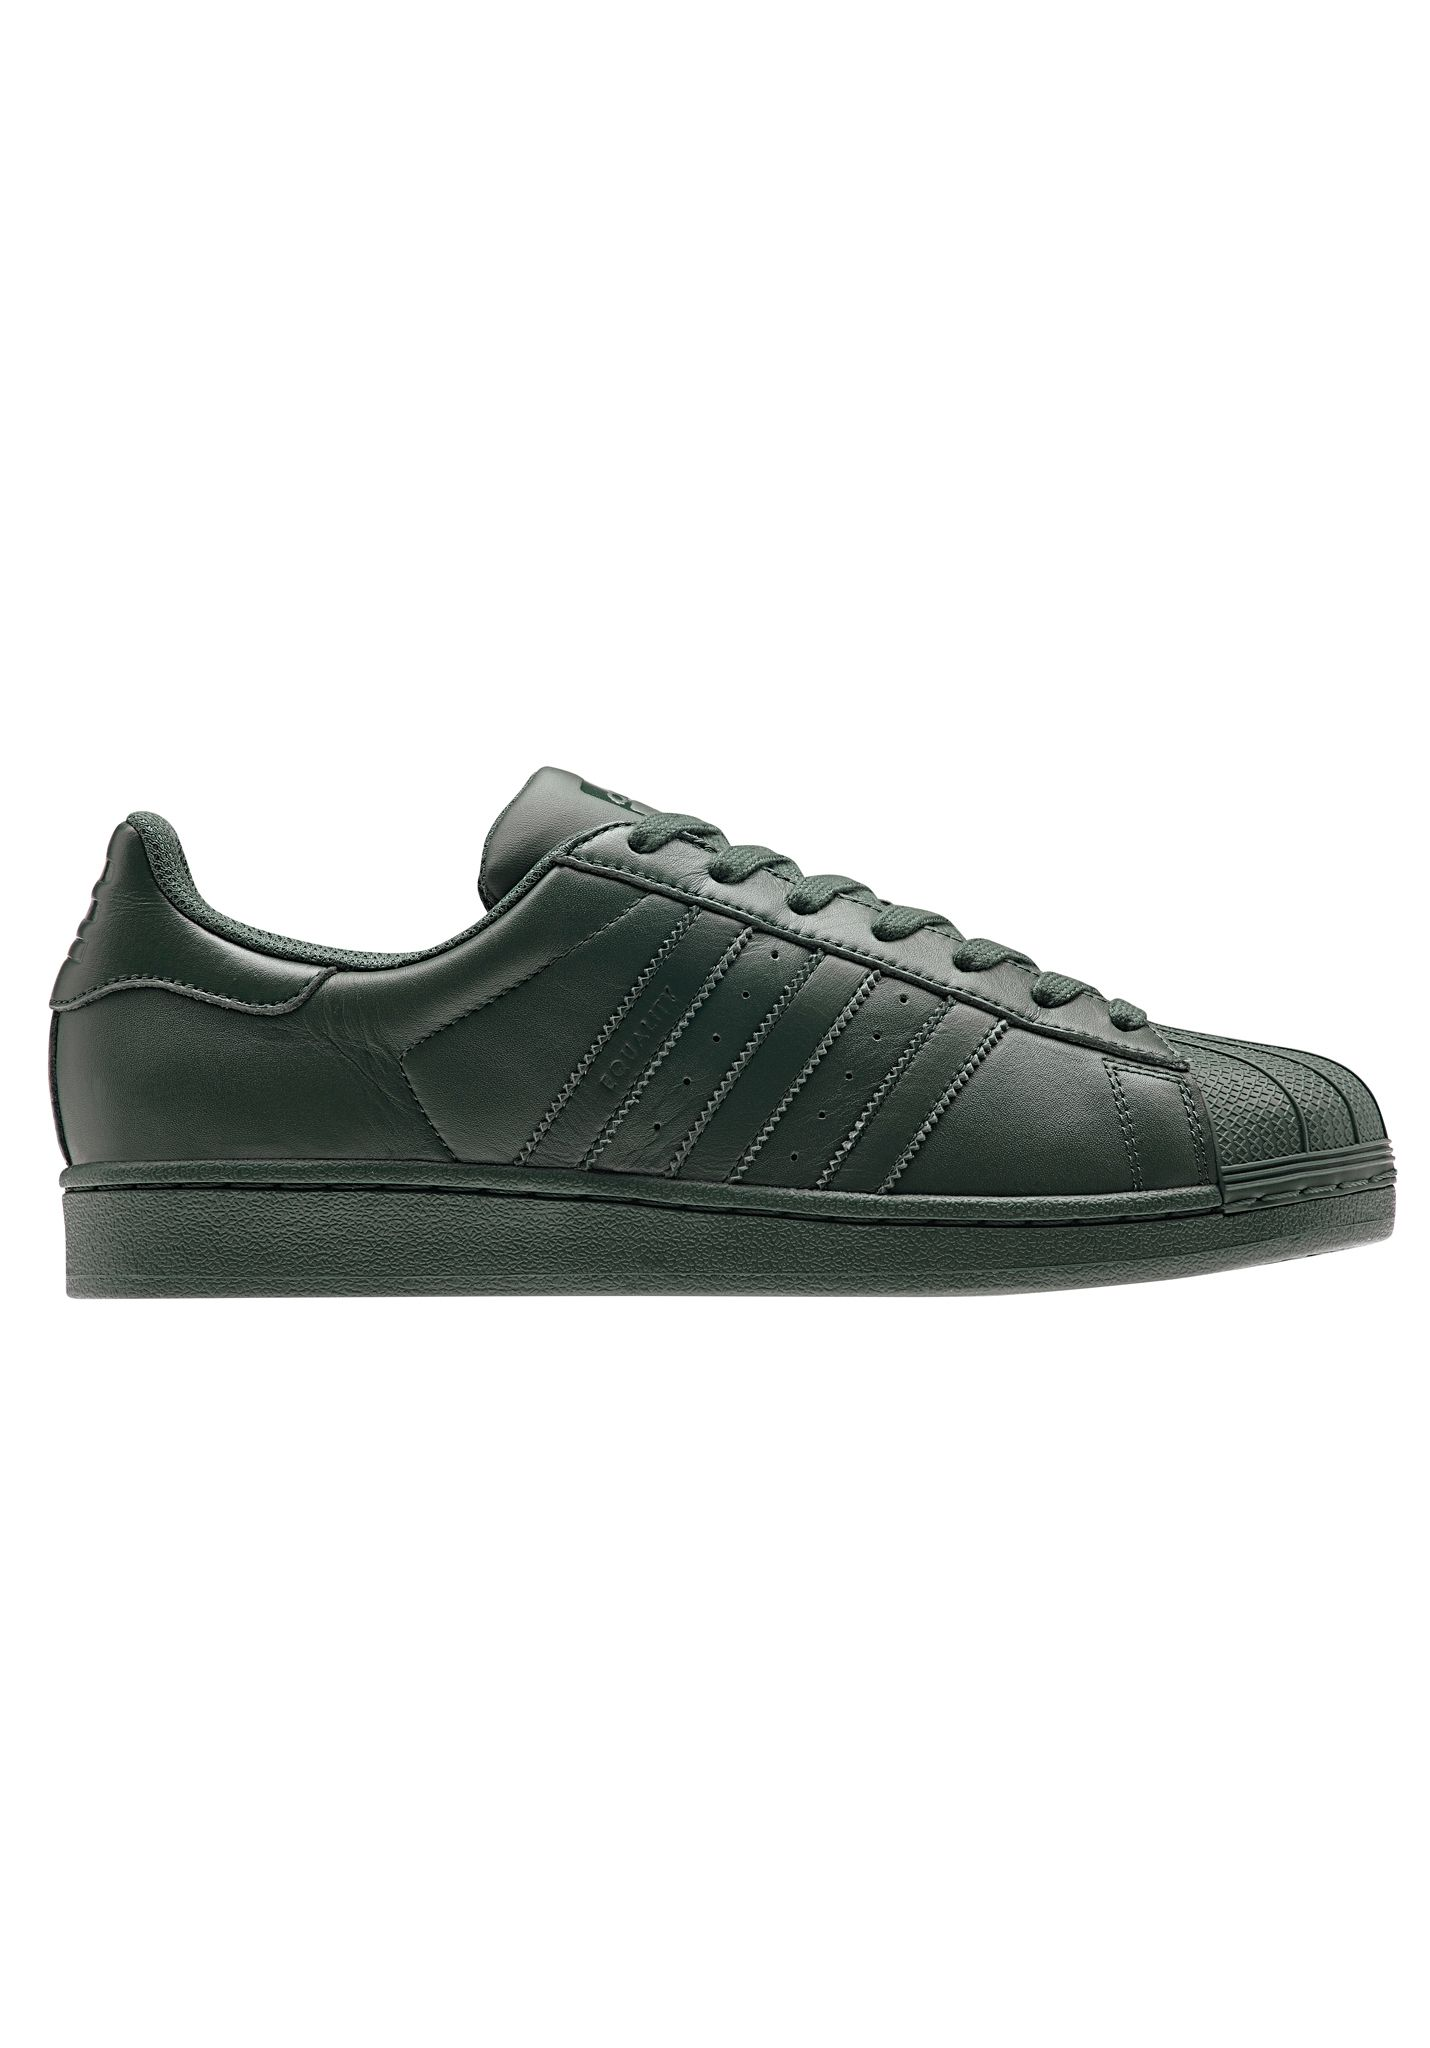 ADIDAS Superstar Green Planet Supercolor Sneakers Green Sports Planet Sports 6e1976a - rogvitaminer.website